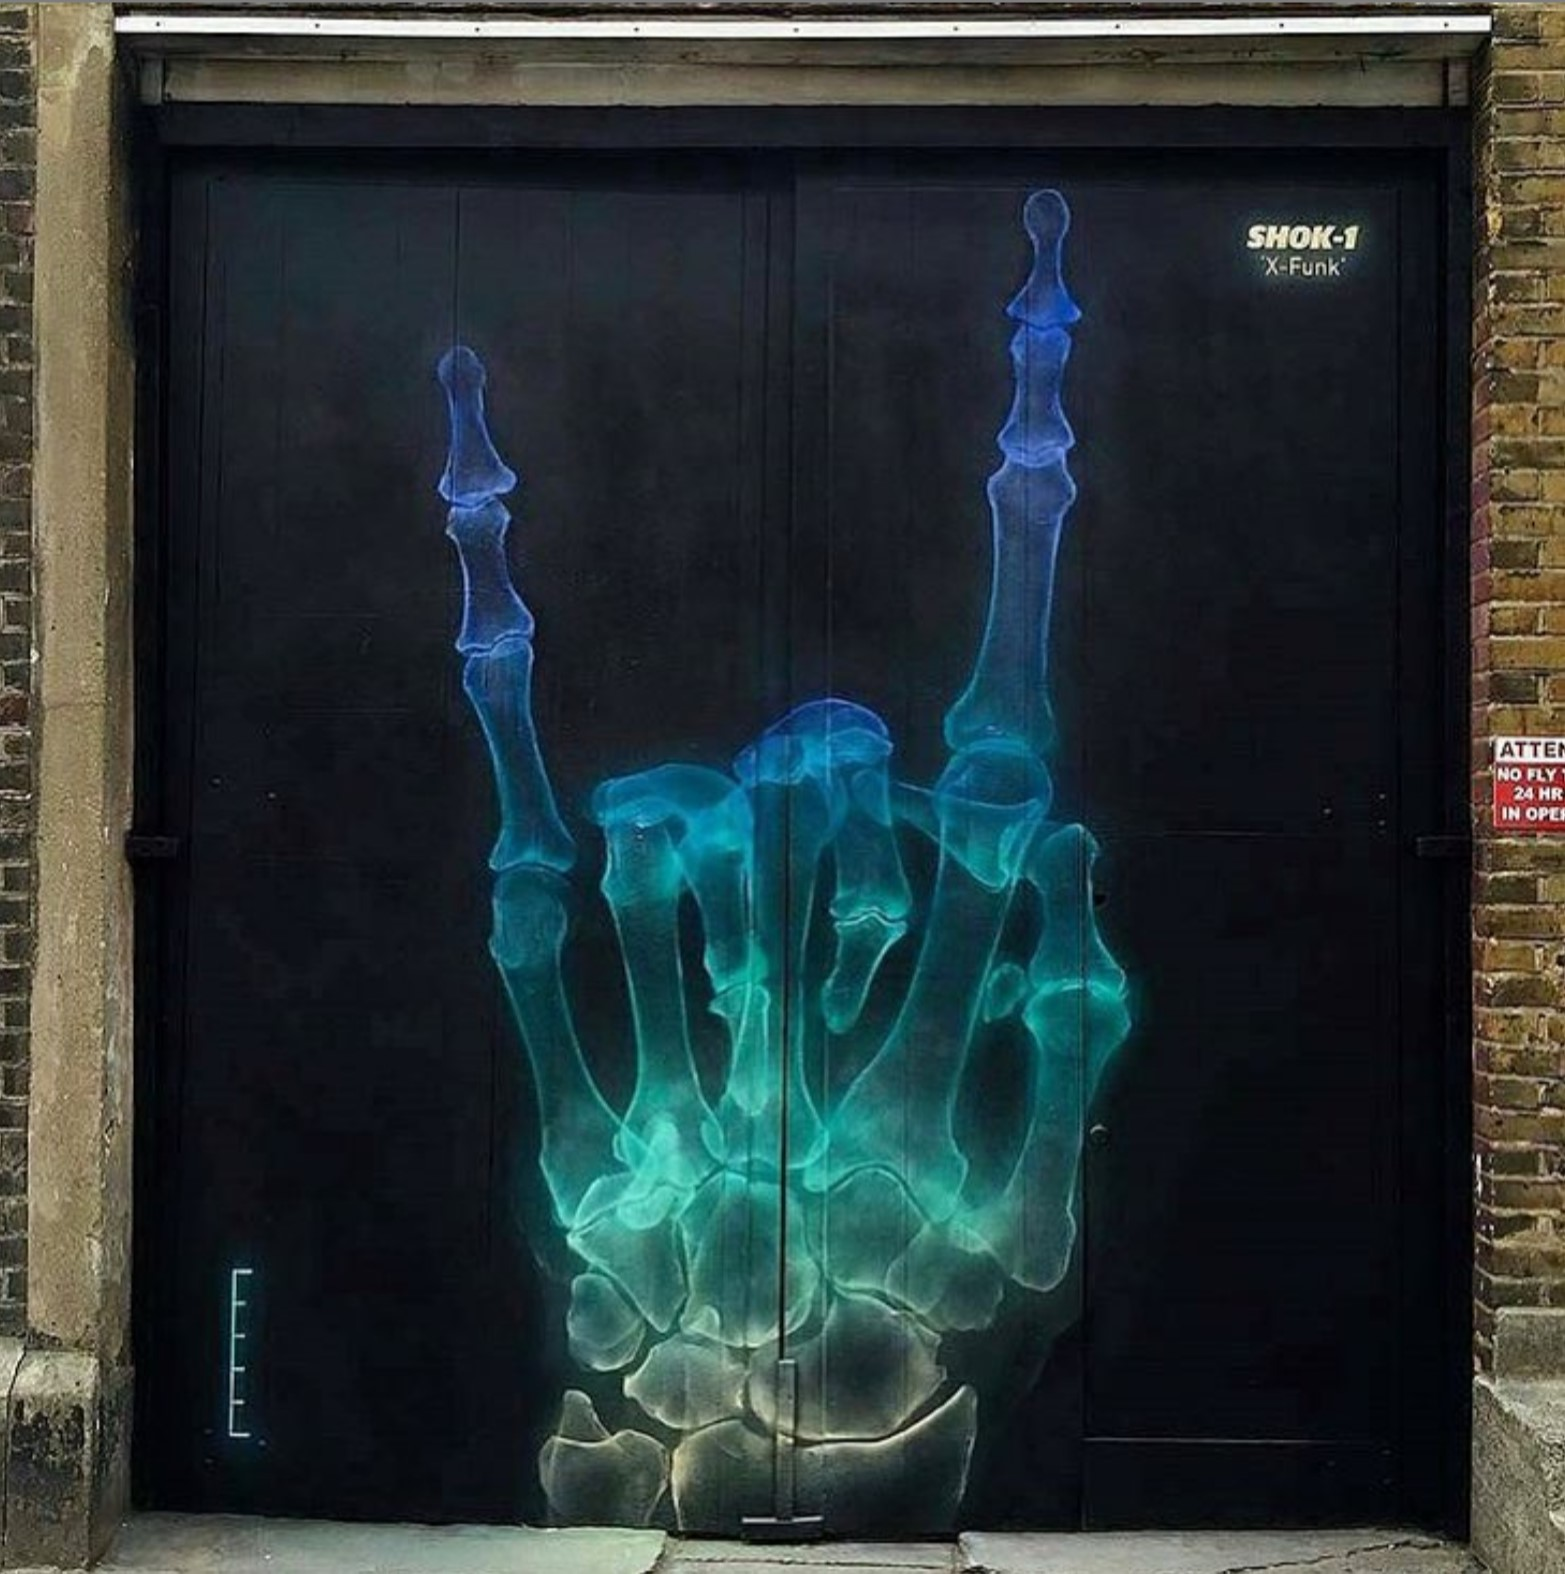 aerosol X-ray art of a hand by SHOK-1